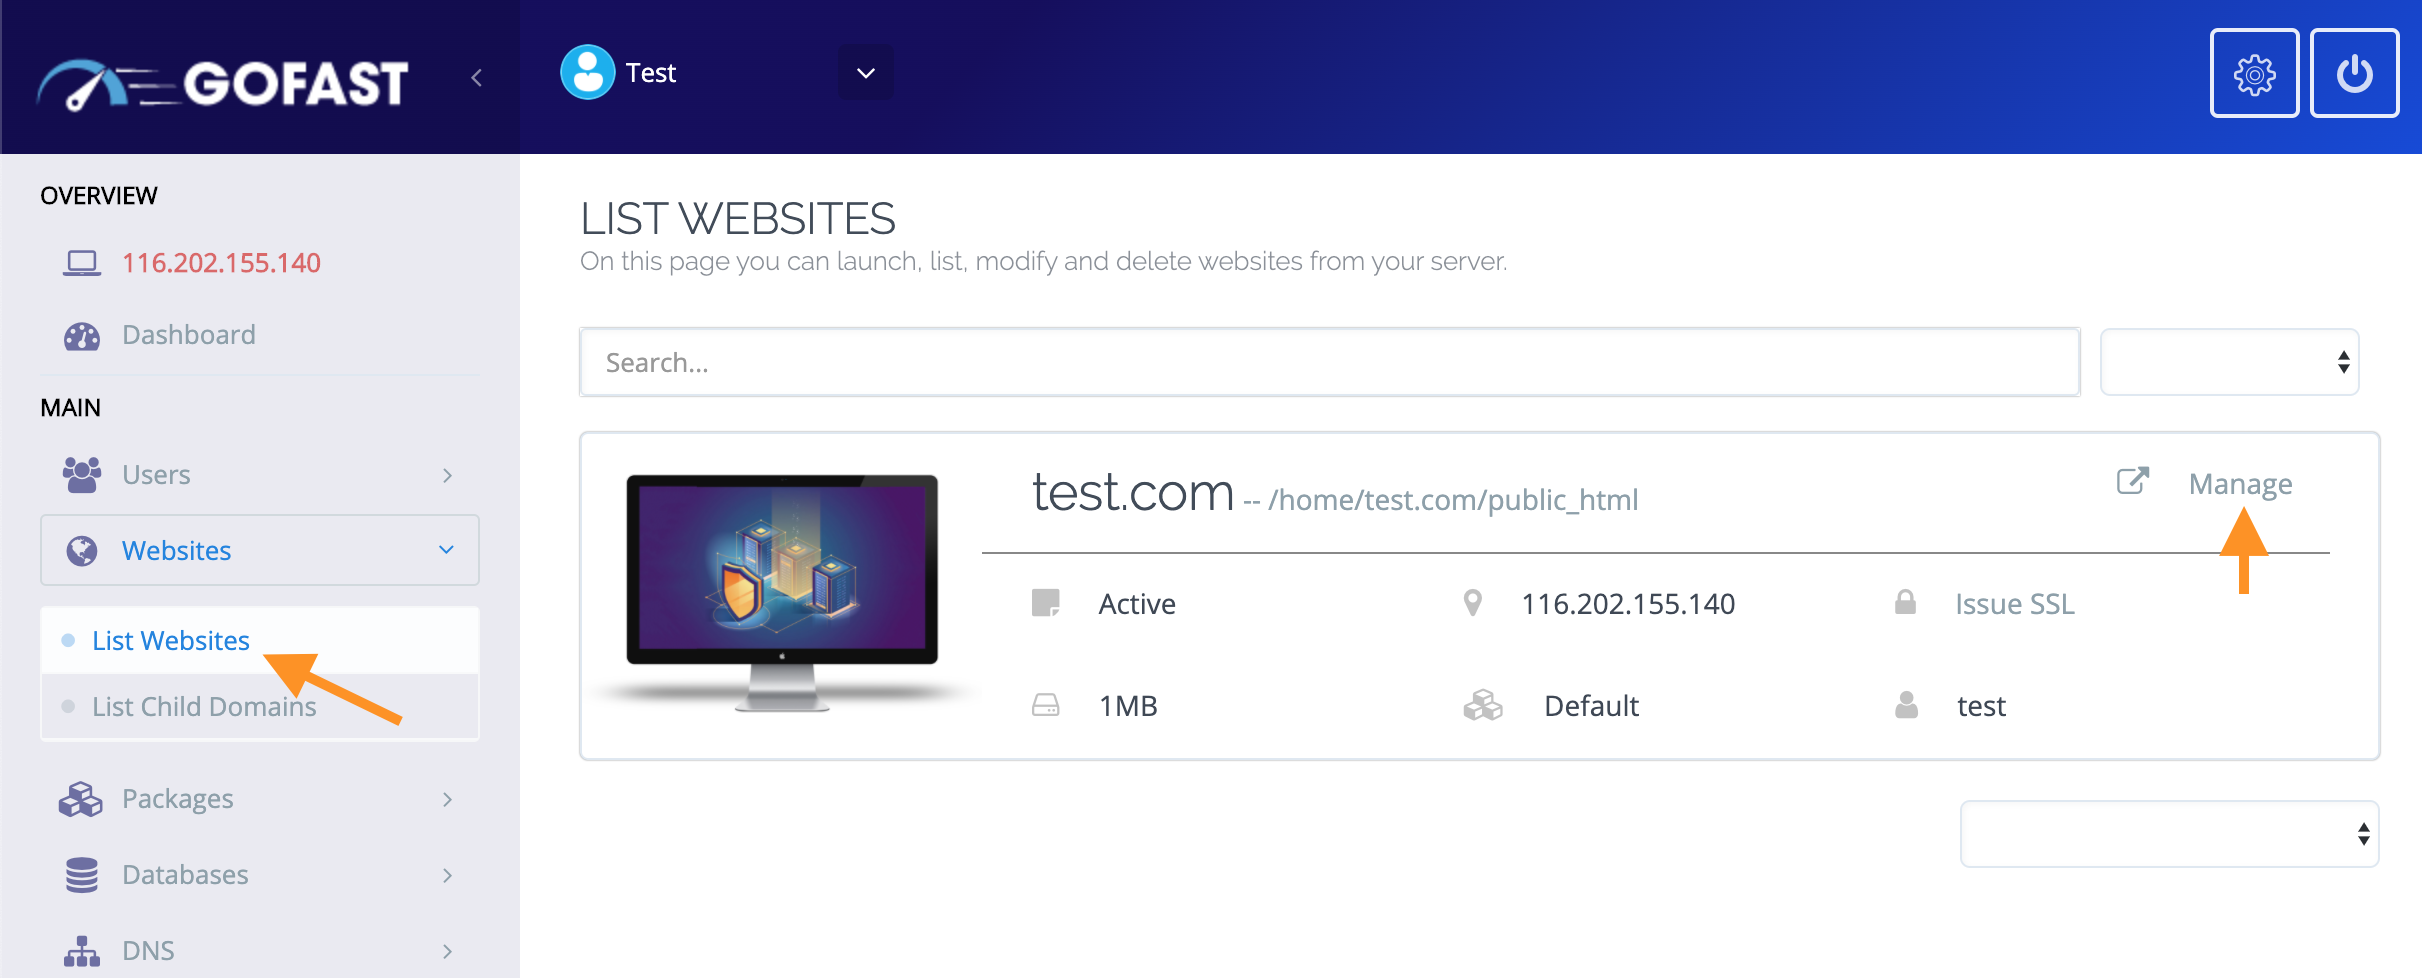 List Websites and Manage